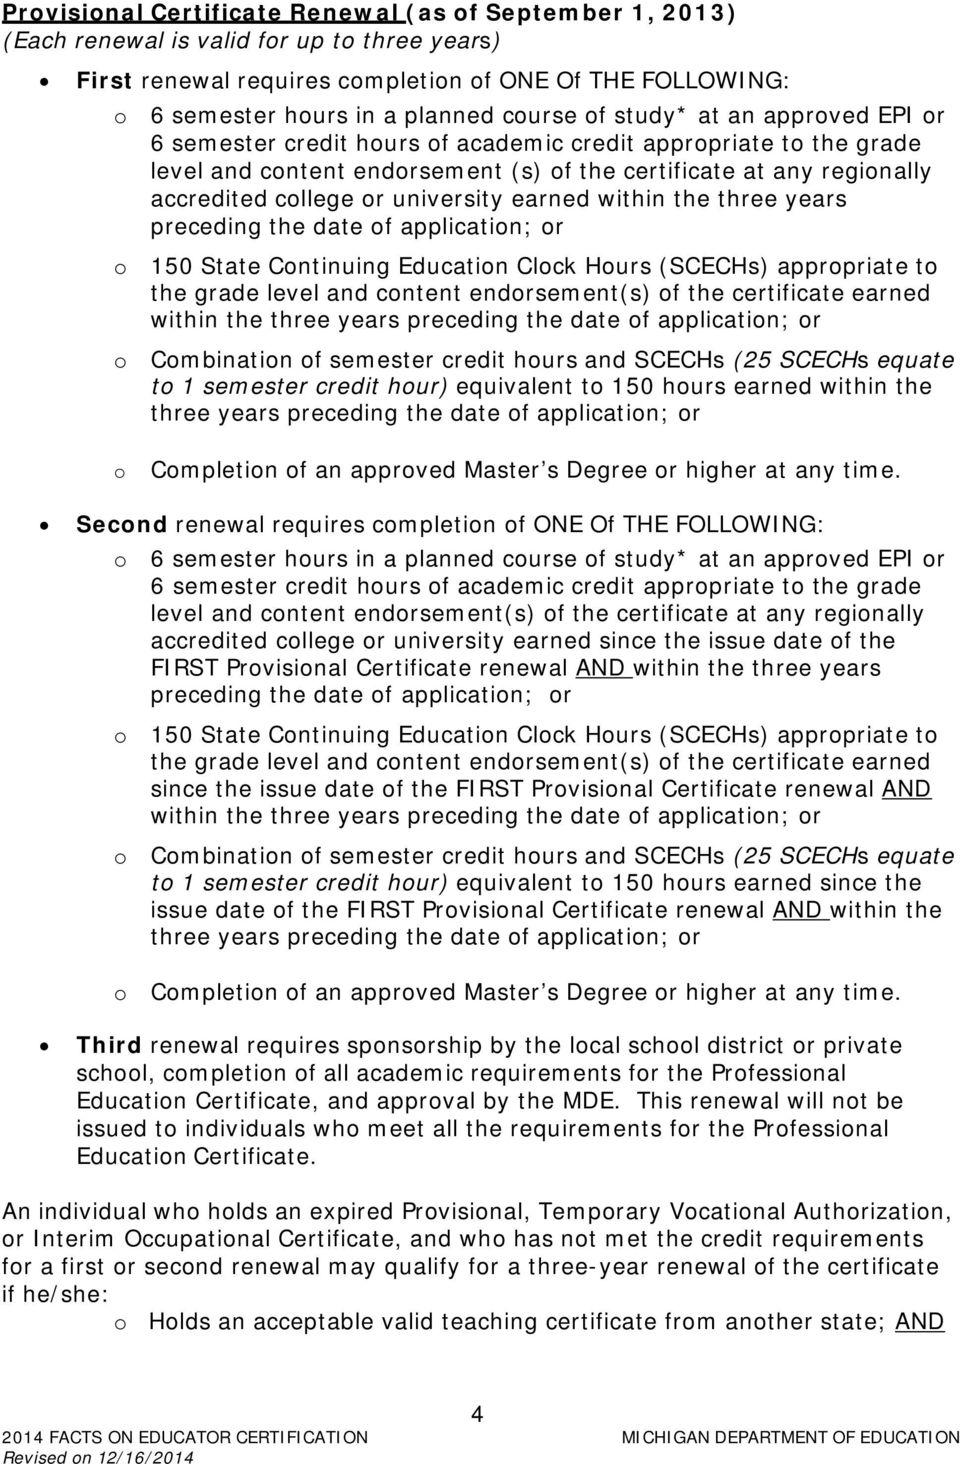 Table Of Contents Office Of Professional Preparation Services